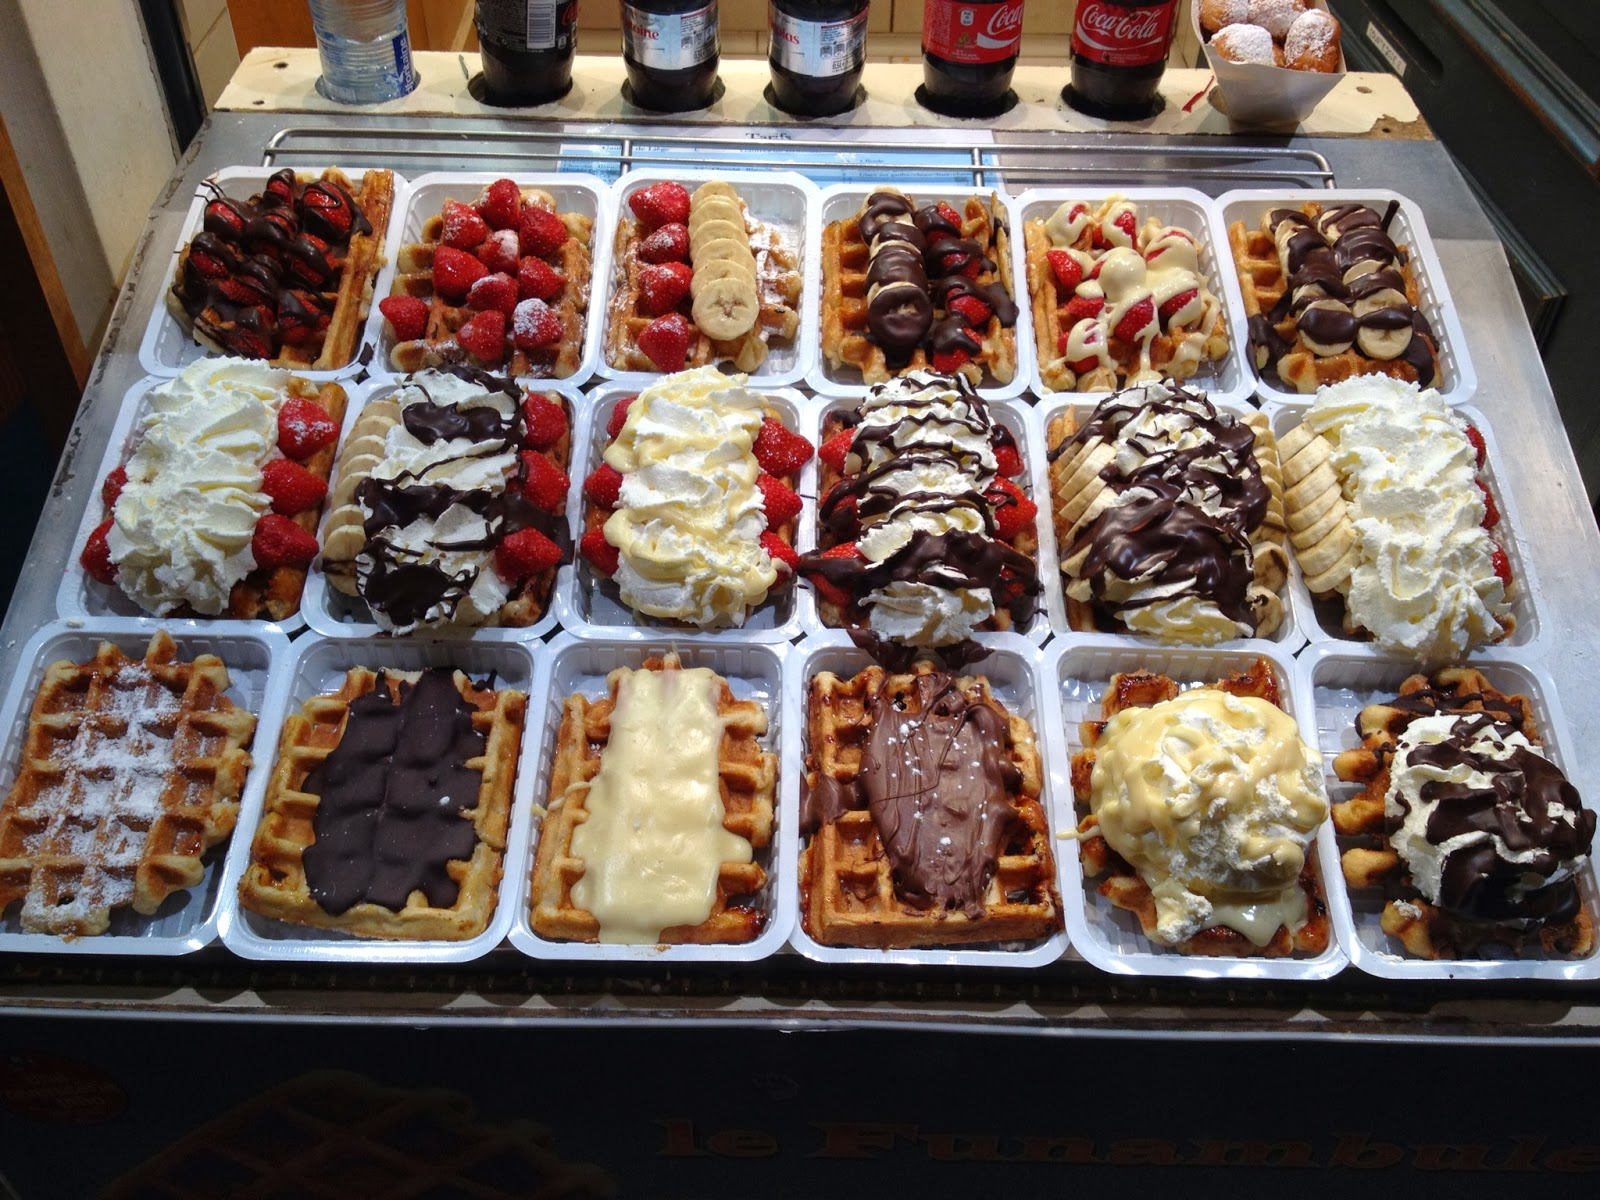 Brussels - More waffles and their toppings